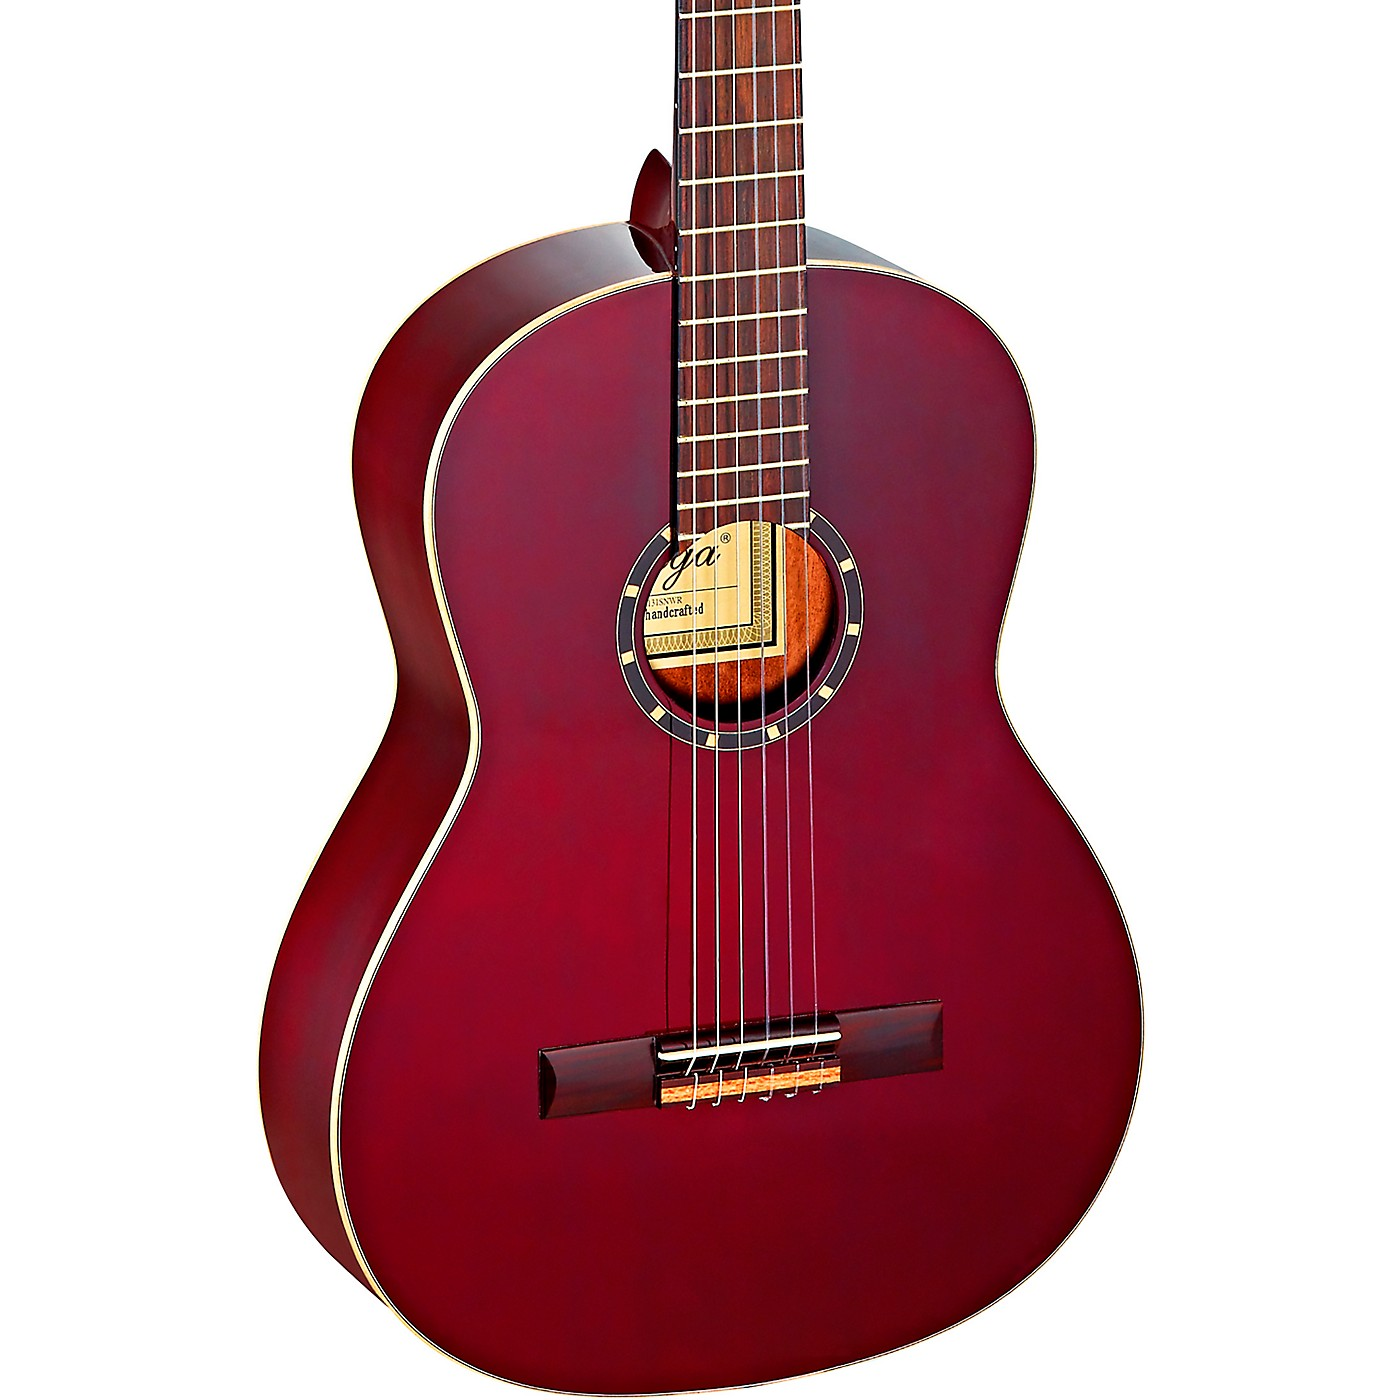 Ortega Family Series Pro R131SNWR Slim Neck Classical Guitar thumbnail